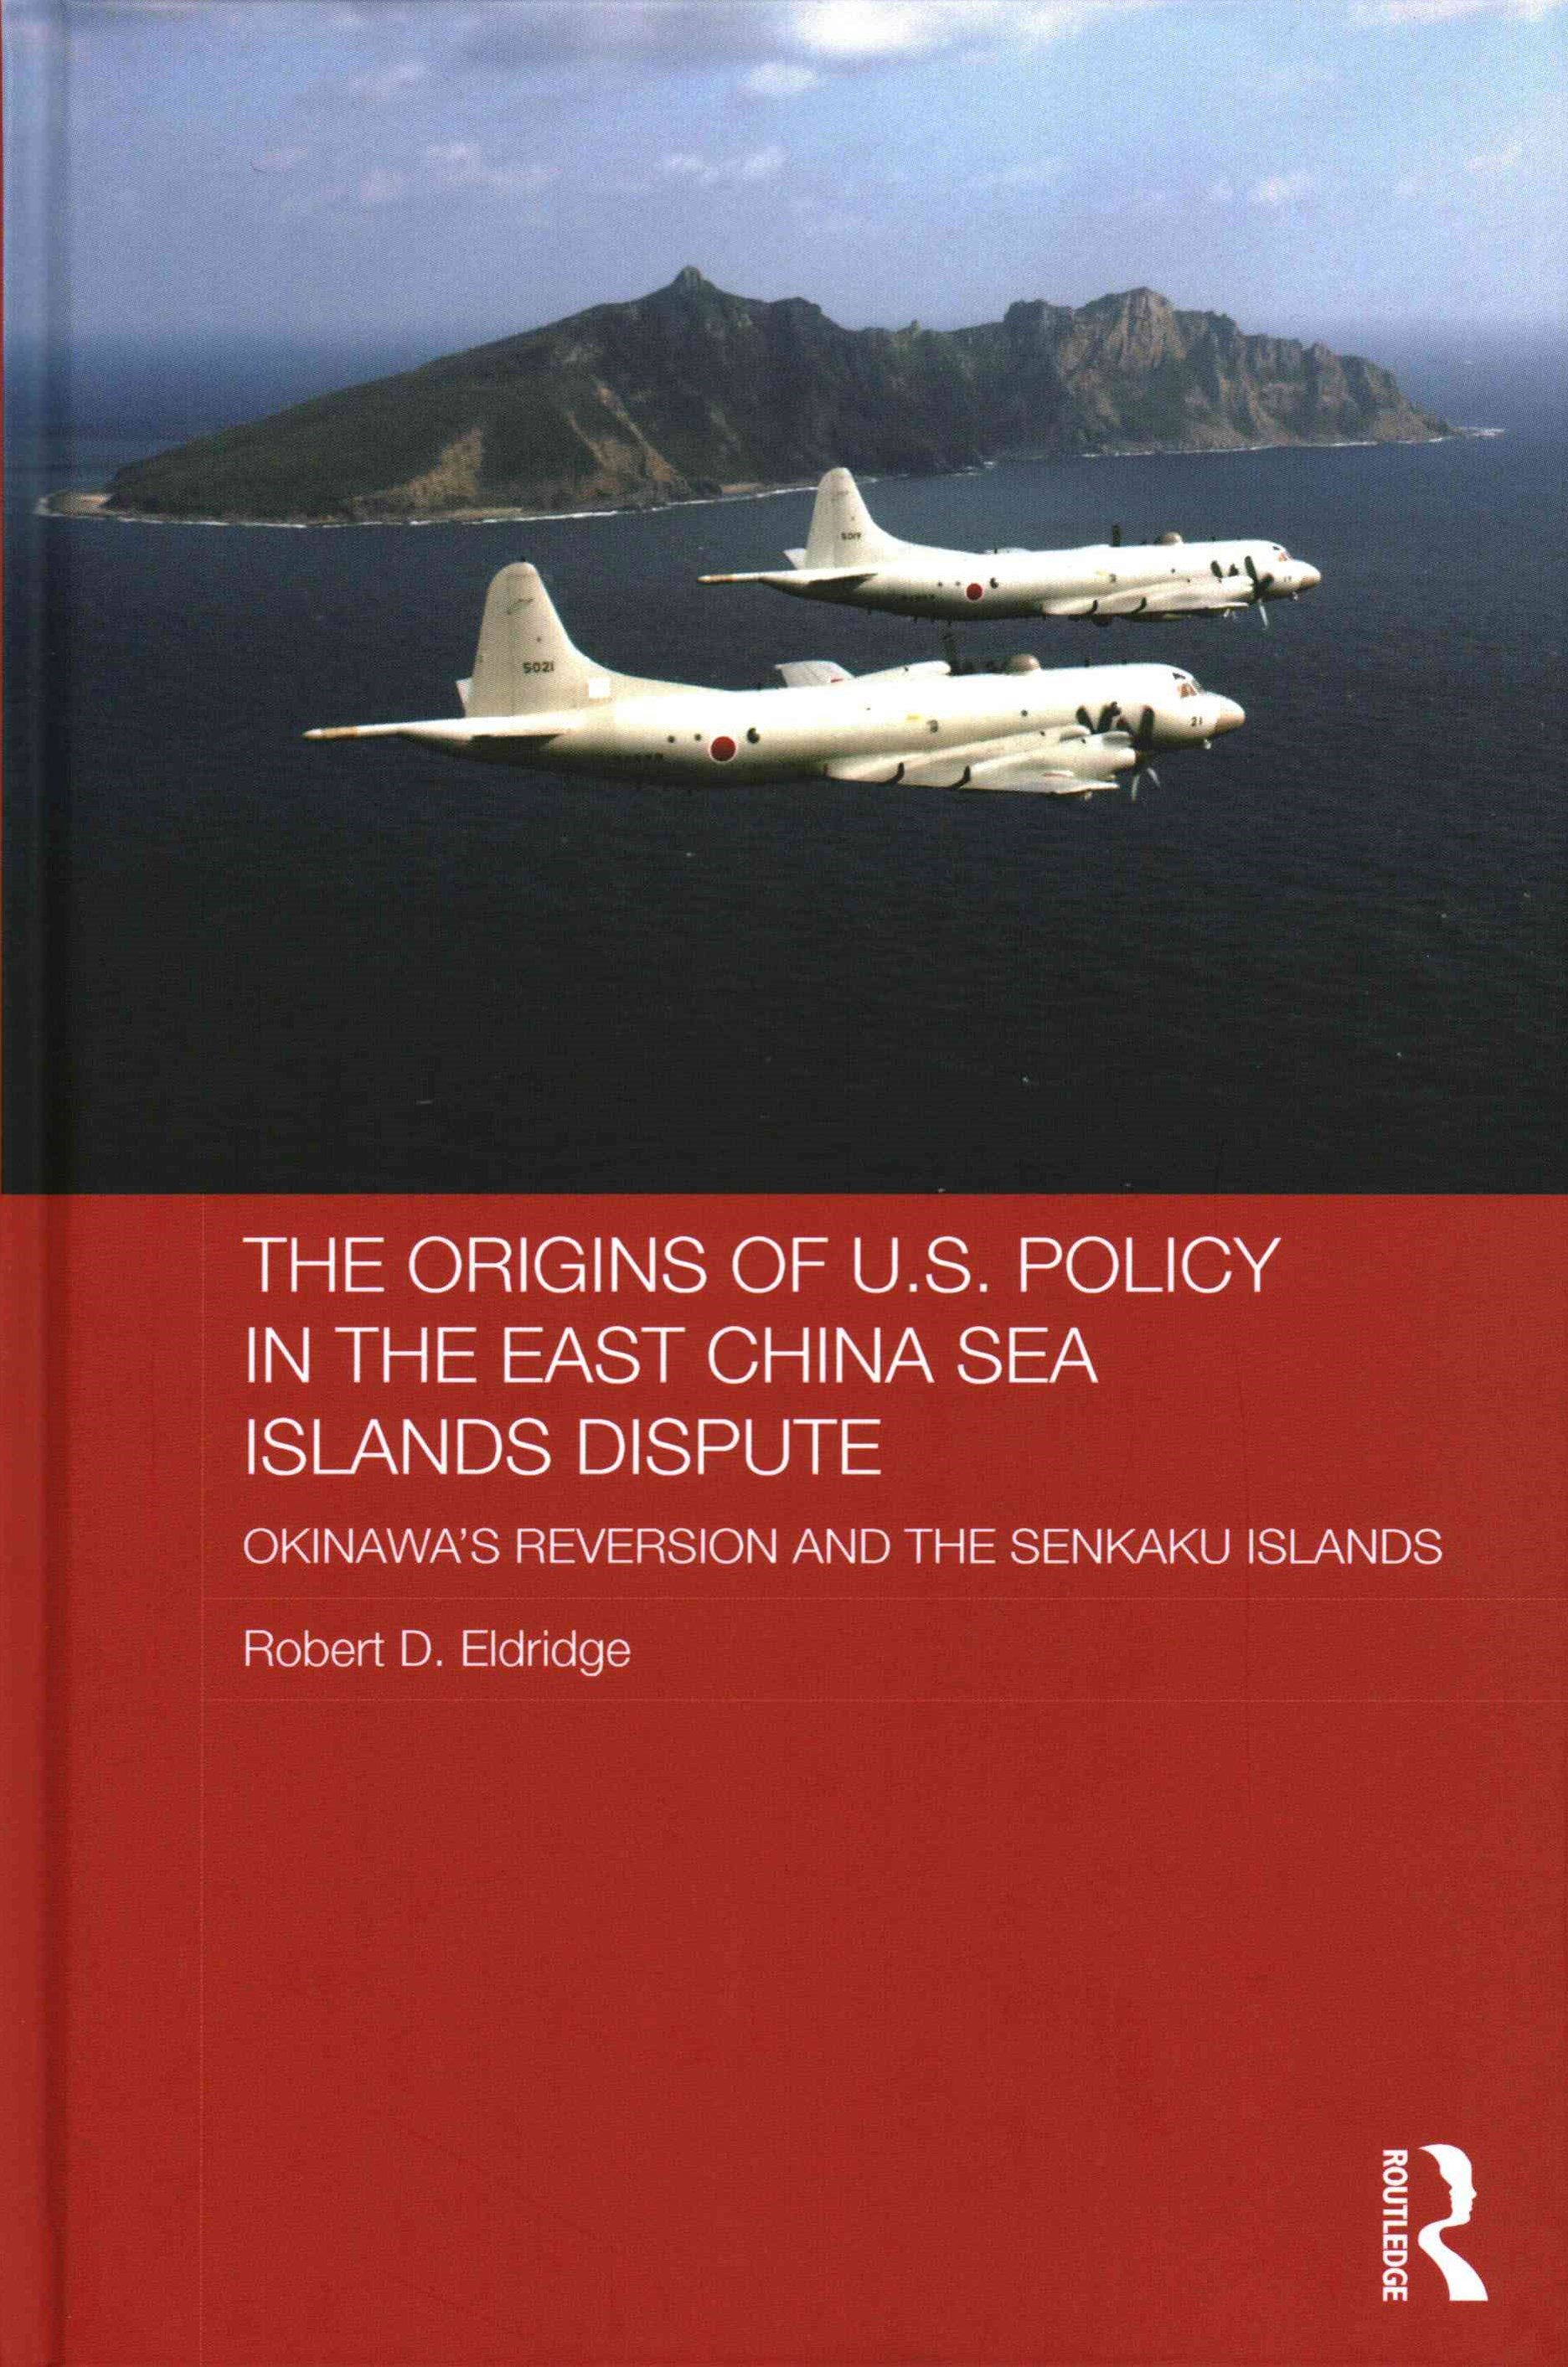 The Origins of U. S. Policy in the East China Sea Islands Dispute